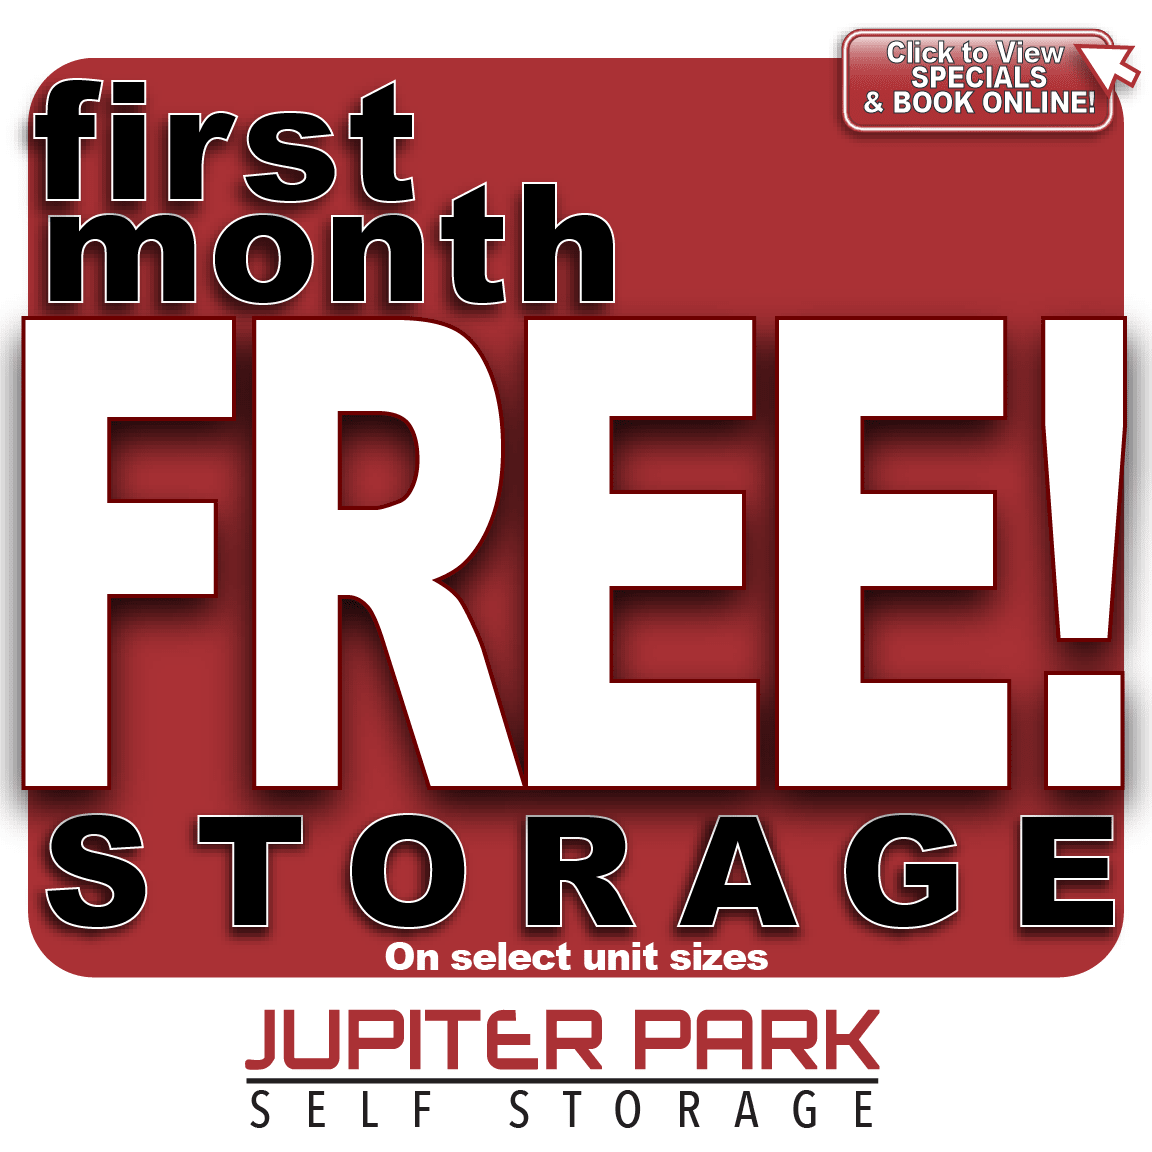 Special at Jupiter Park Self Storage in Jupiter, Florida